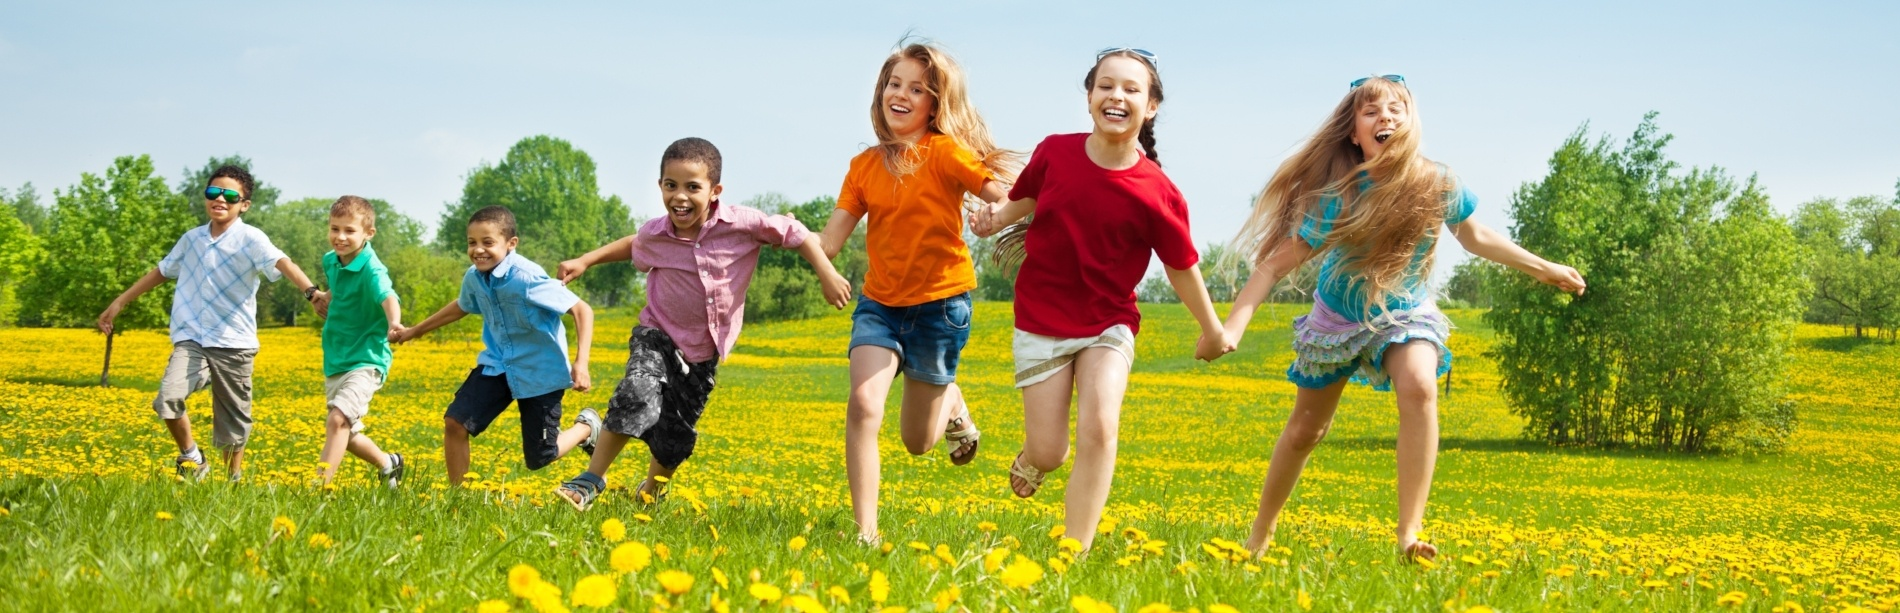 Children playfully running through a field of dandelions